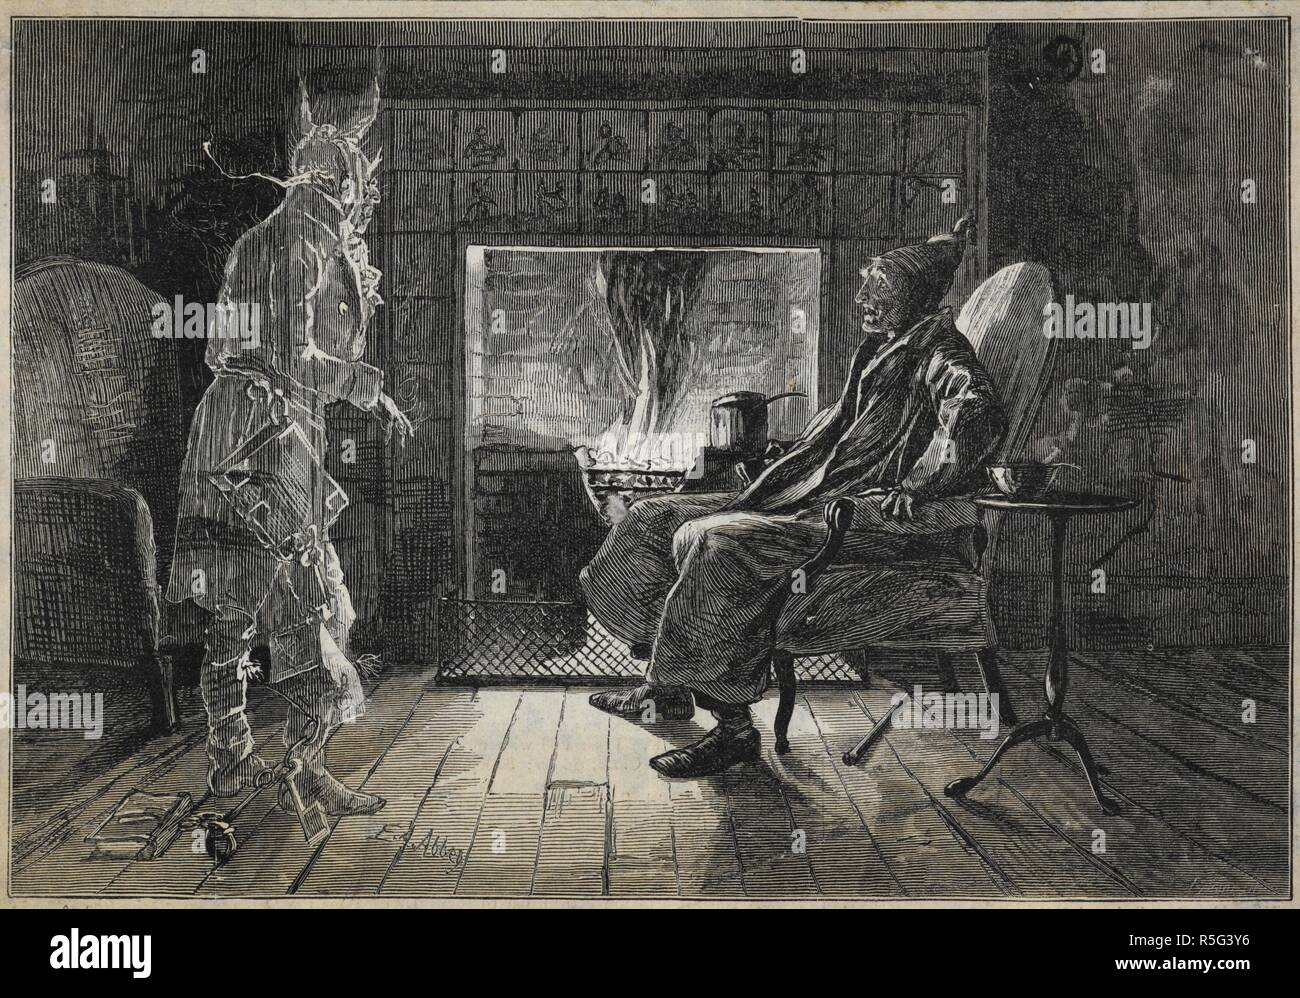 Jacob Marley Christmas Carol.Ebenezer Scrooge Visited By The Ghost Of Jacob Marley A